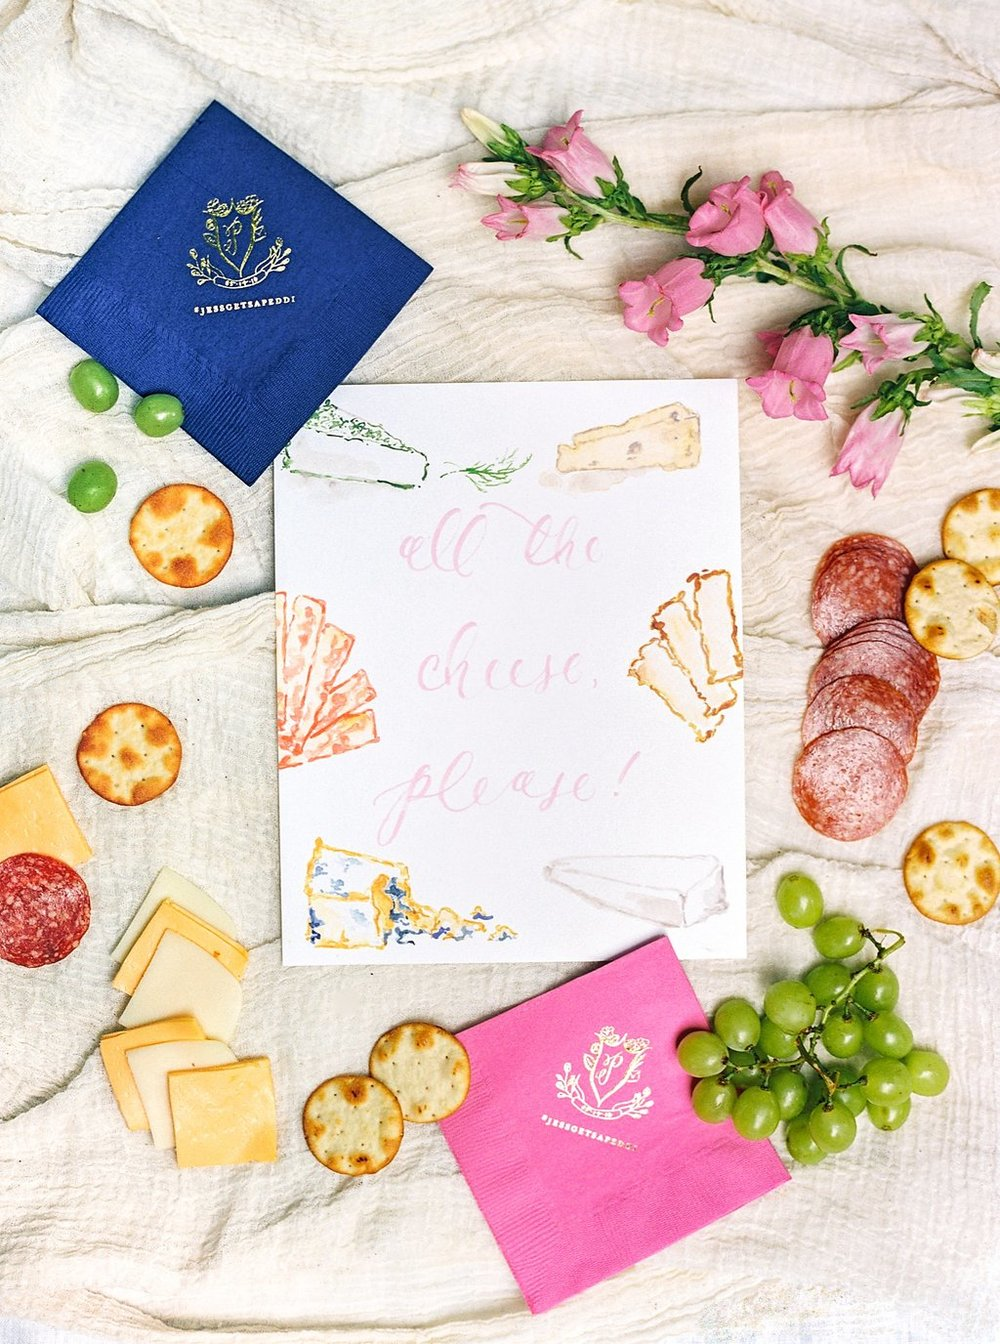 Custom Watercolor Cheese Signage and Custom Gold Foil Wedding Crest Cocktail Napkins | Blush and Navy Wedding with Fuchsia, French Blue and Gold Accents | Simply Jessica Marie's Southern Wedding at Gettysvue Golf Course and Country Club in Knoxville Tennessee | Photo by Perry Vaile Photography